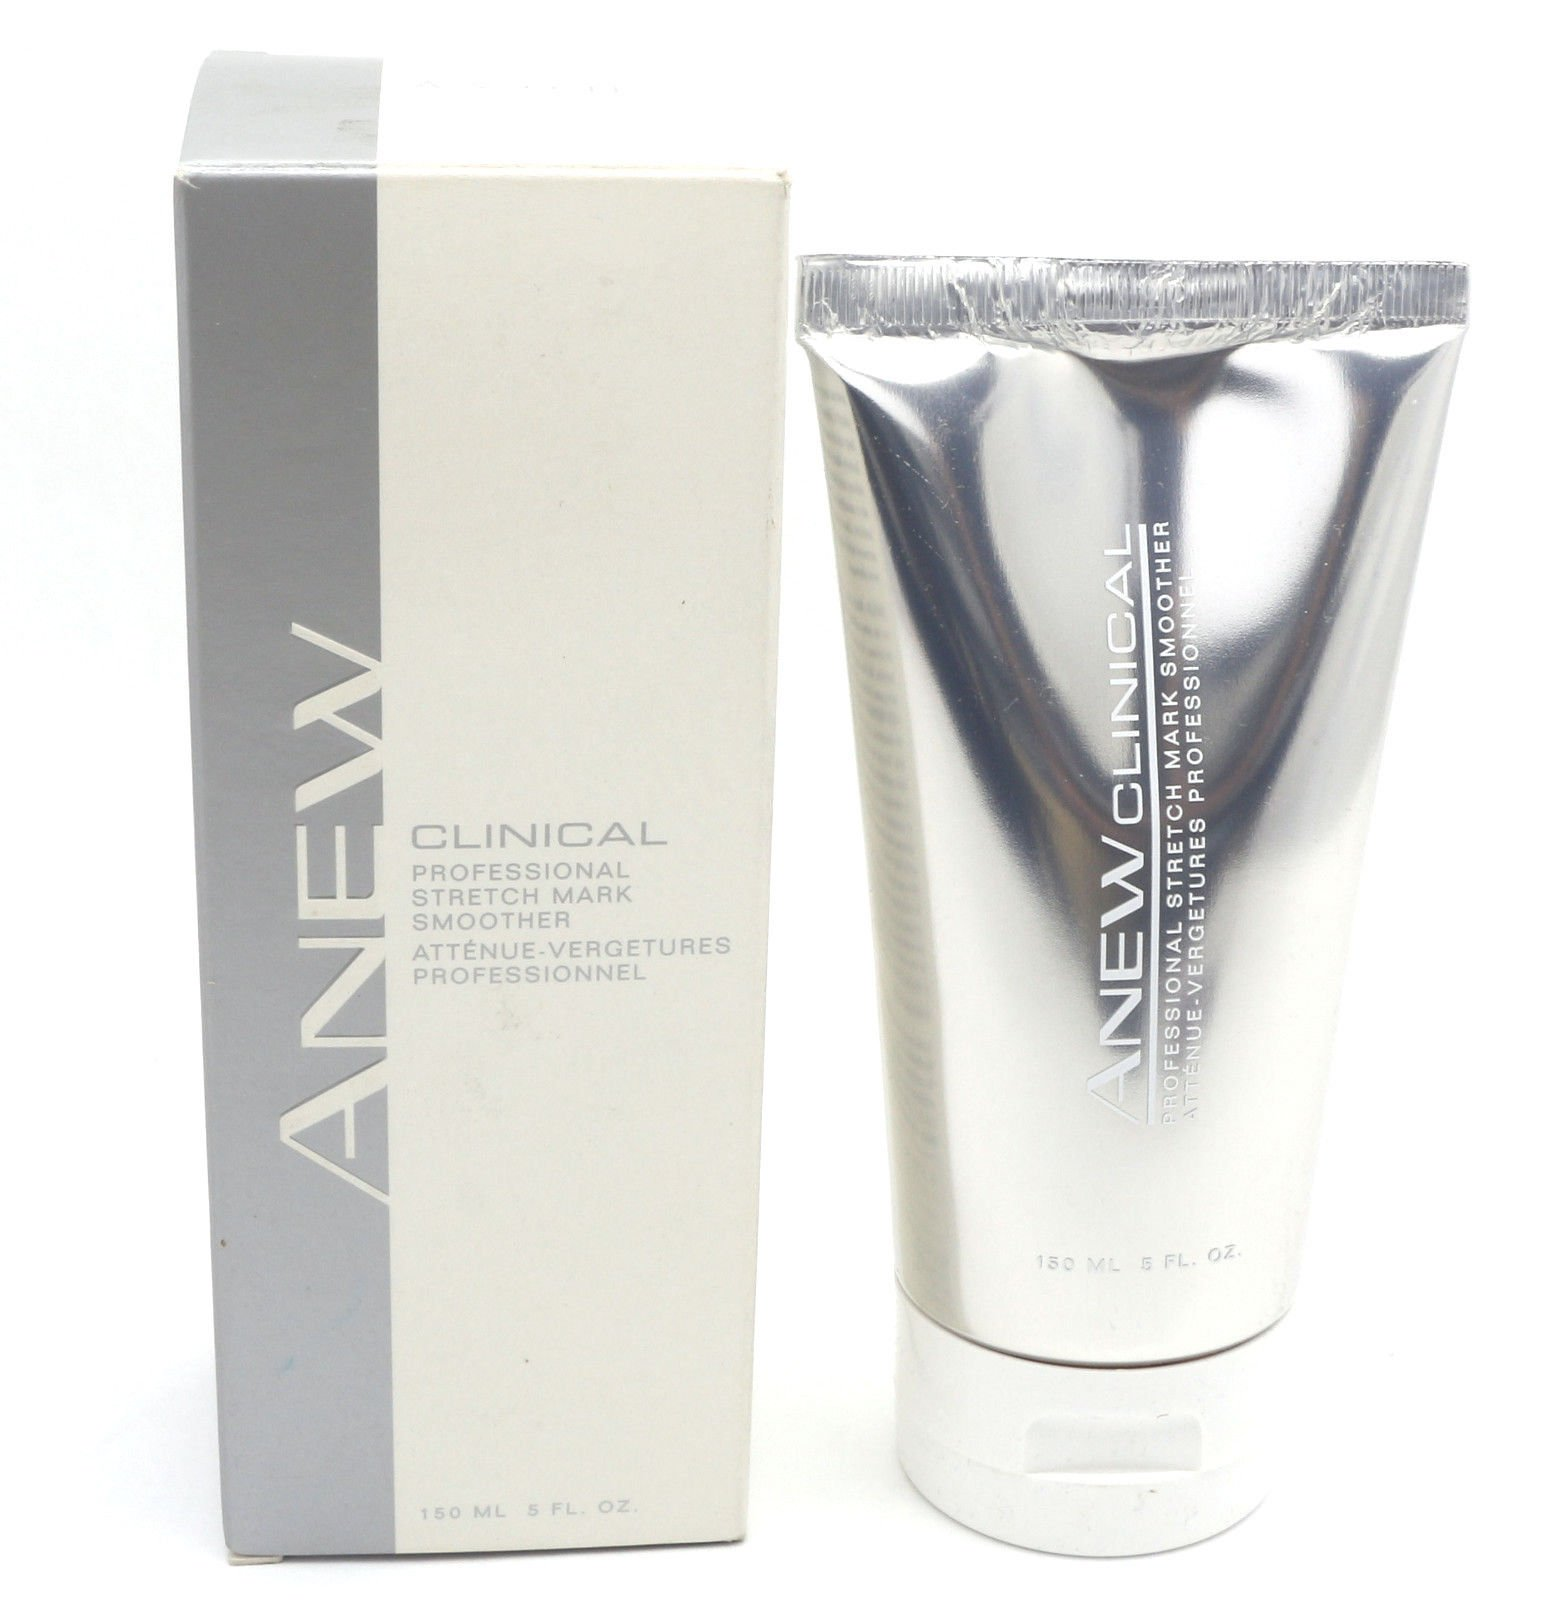 Anew Clinical Professional Stretch Mark Smoother